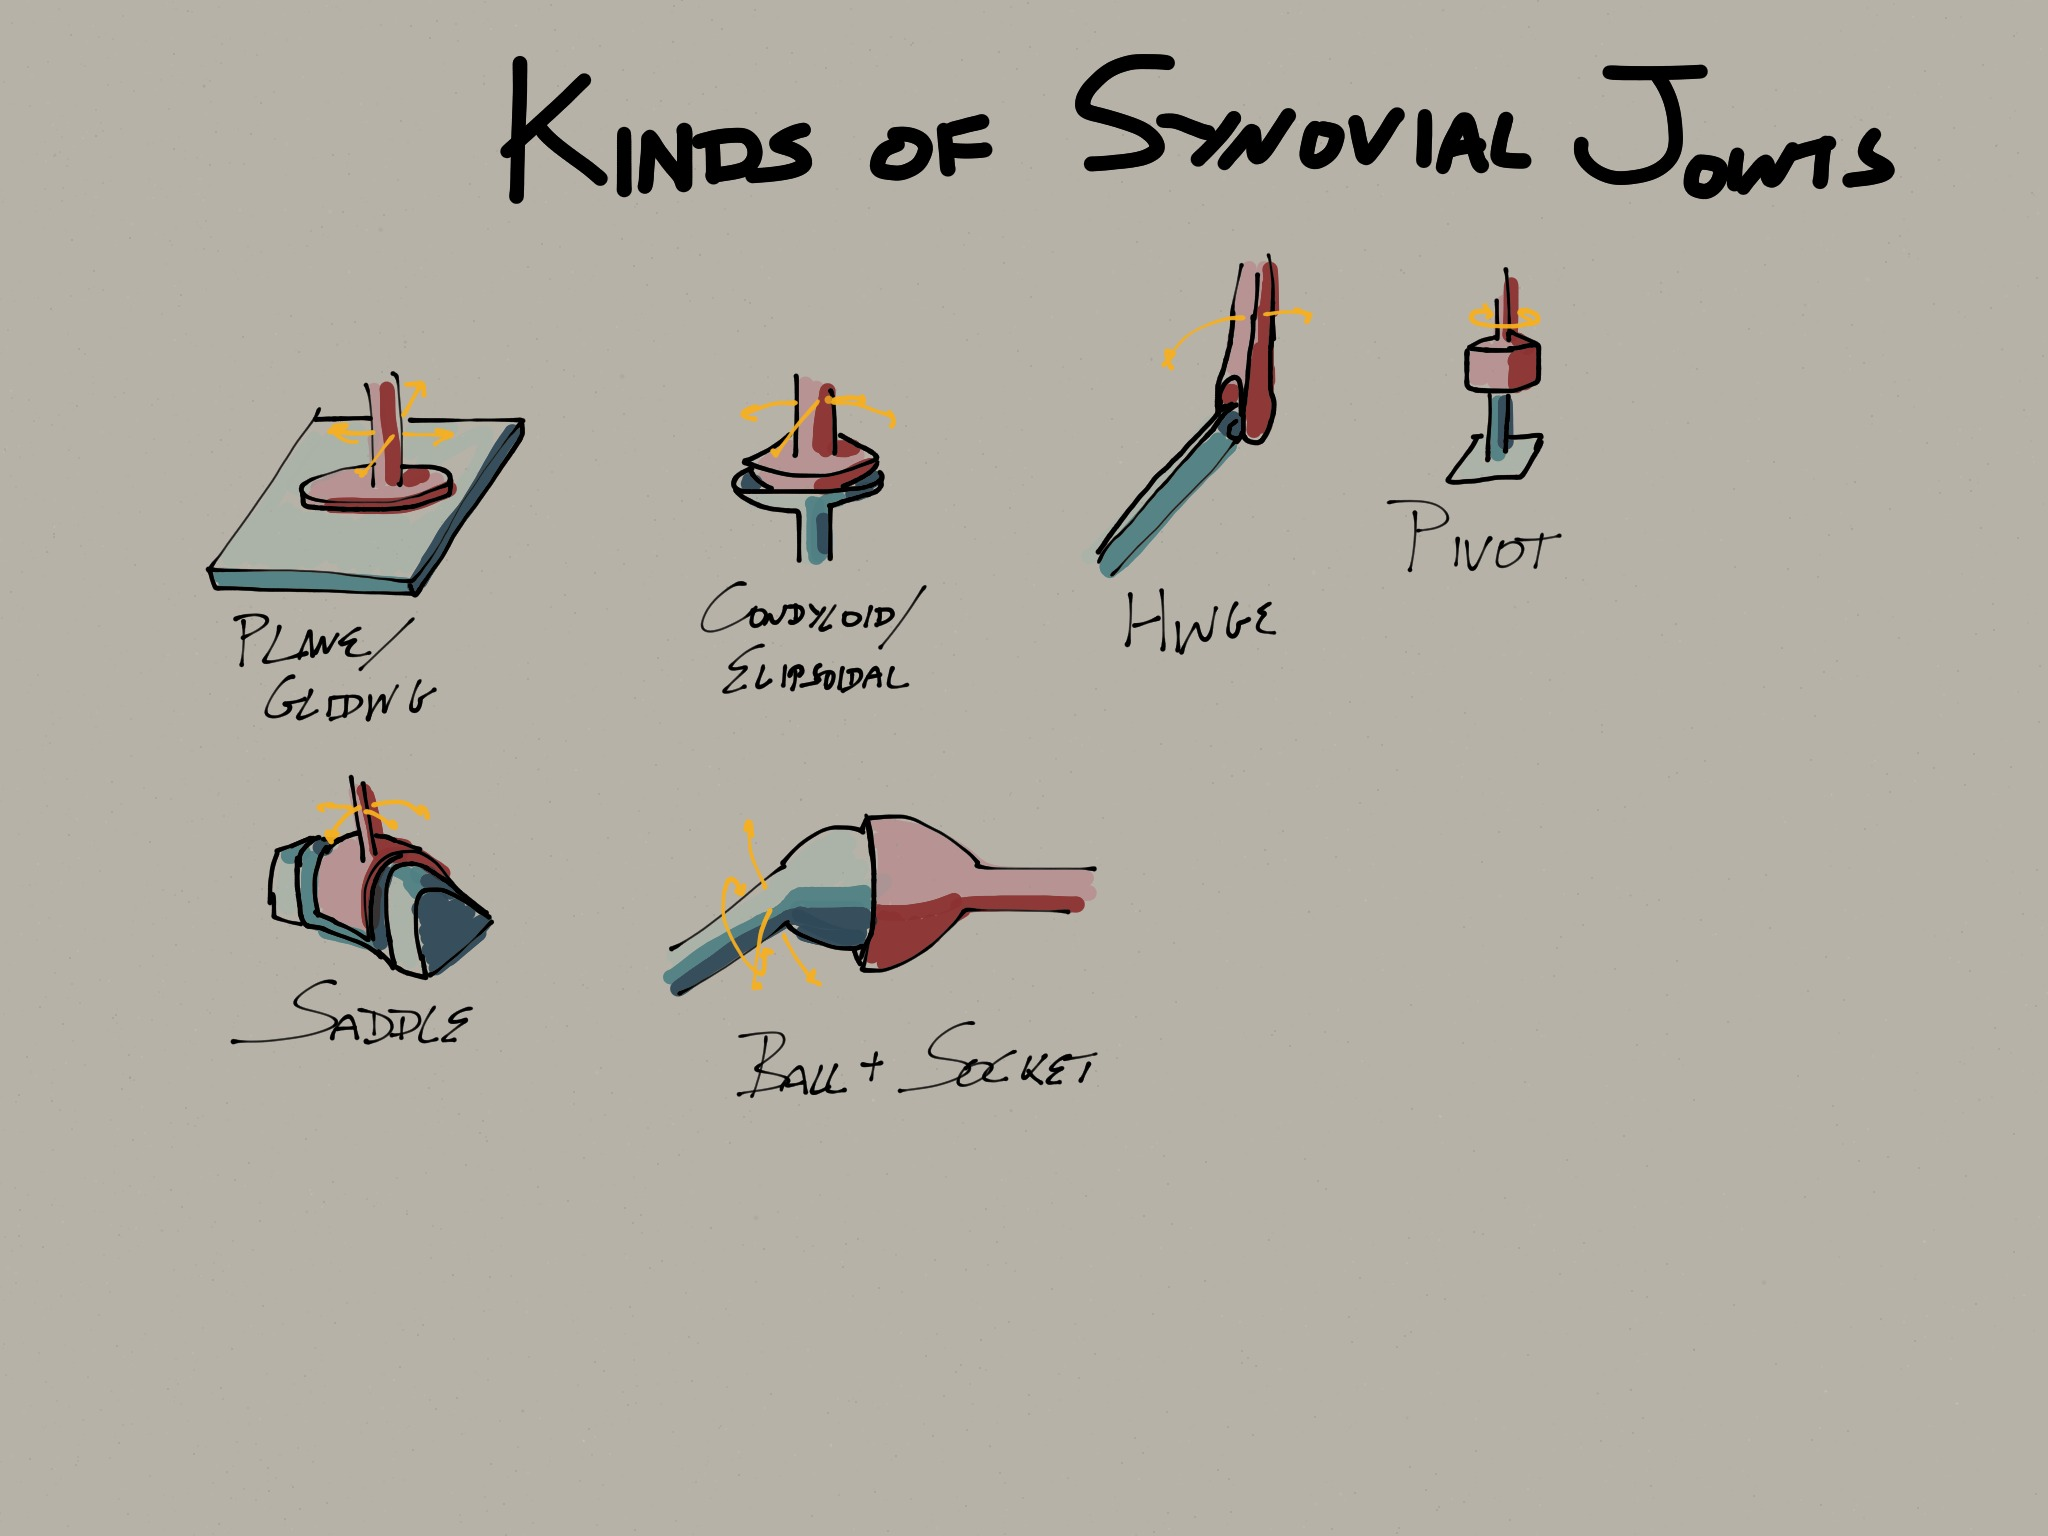 Kinds of synovial joints